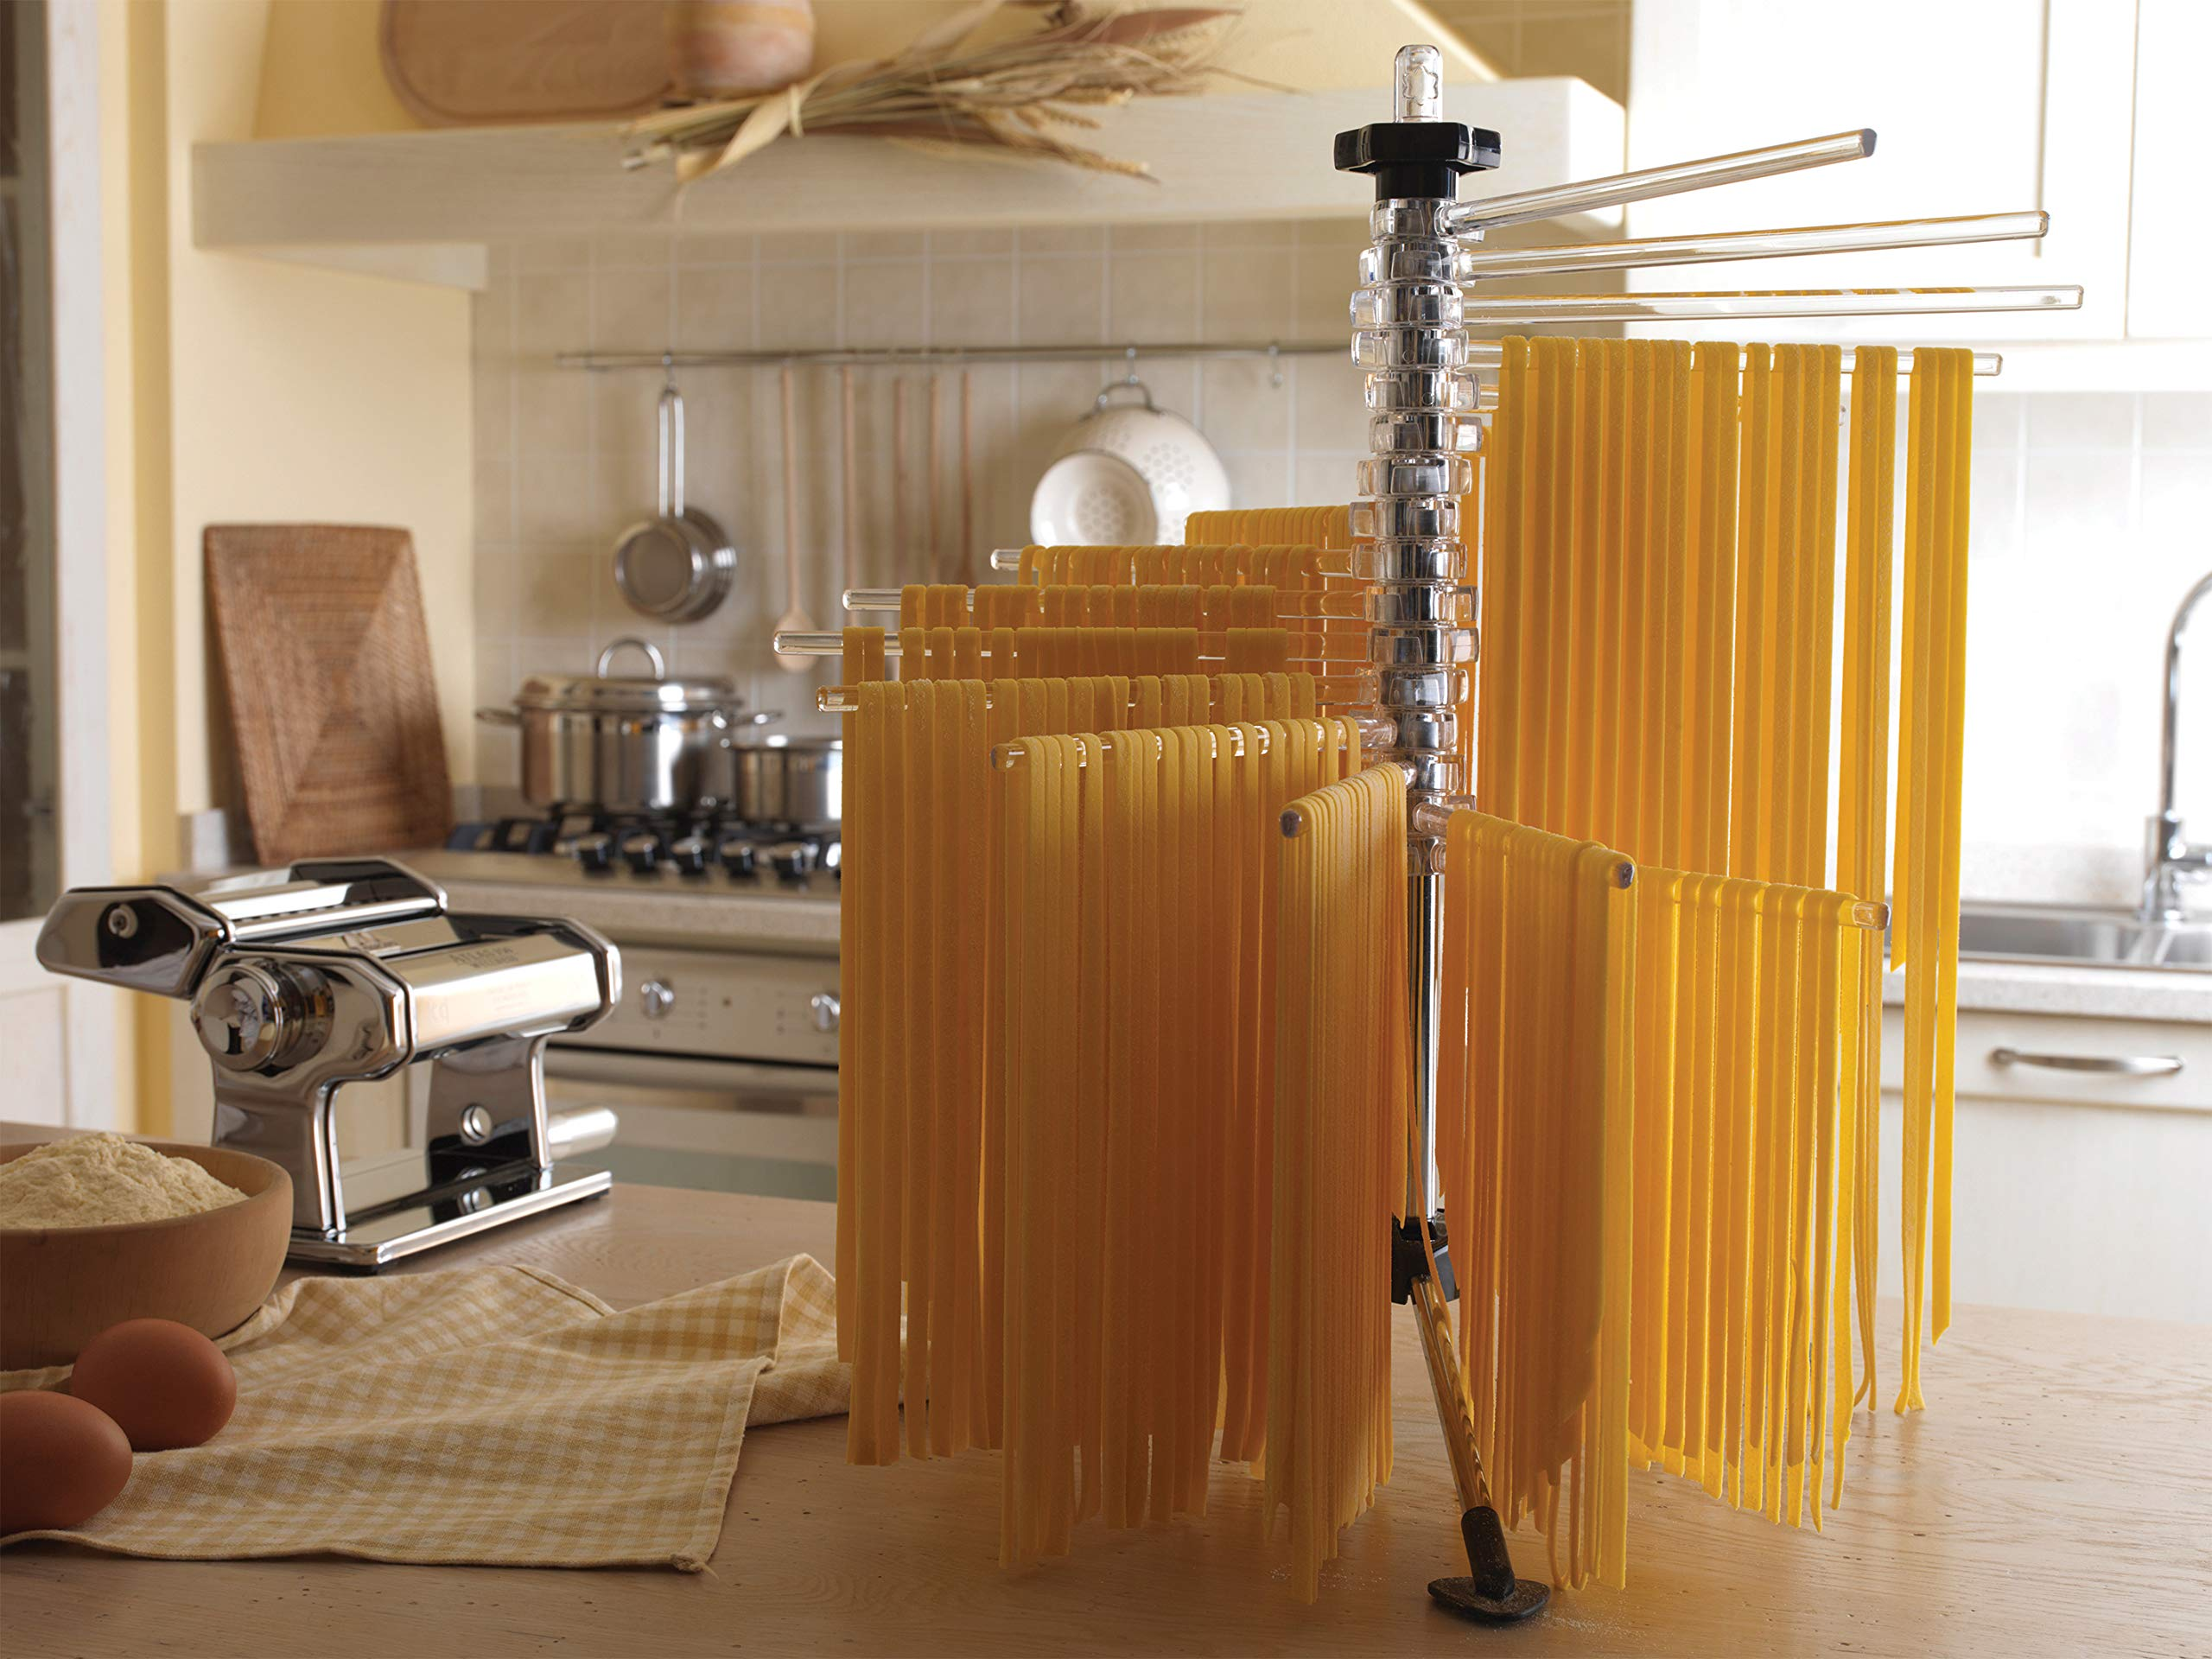 Marcato 8329RD Atlas Pasta Drying Rack, Tacapasta, Made in Italy, Steel and Polycarbonate, Collapsible, Red by Marcato